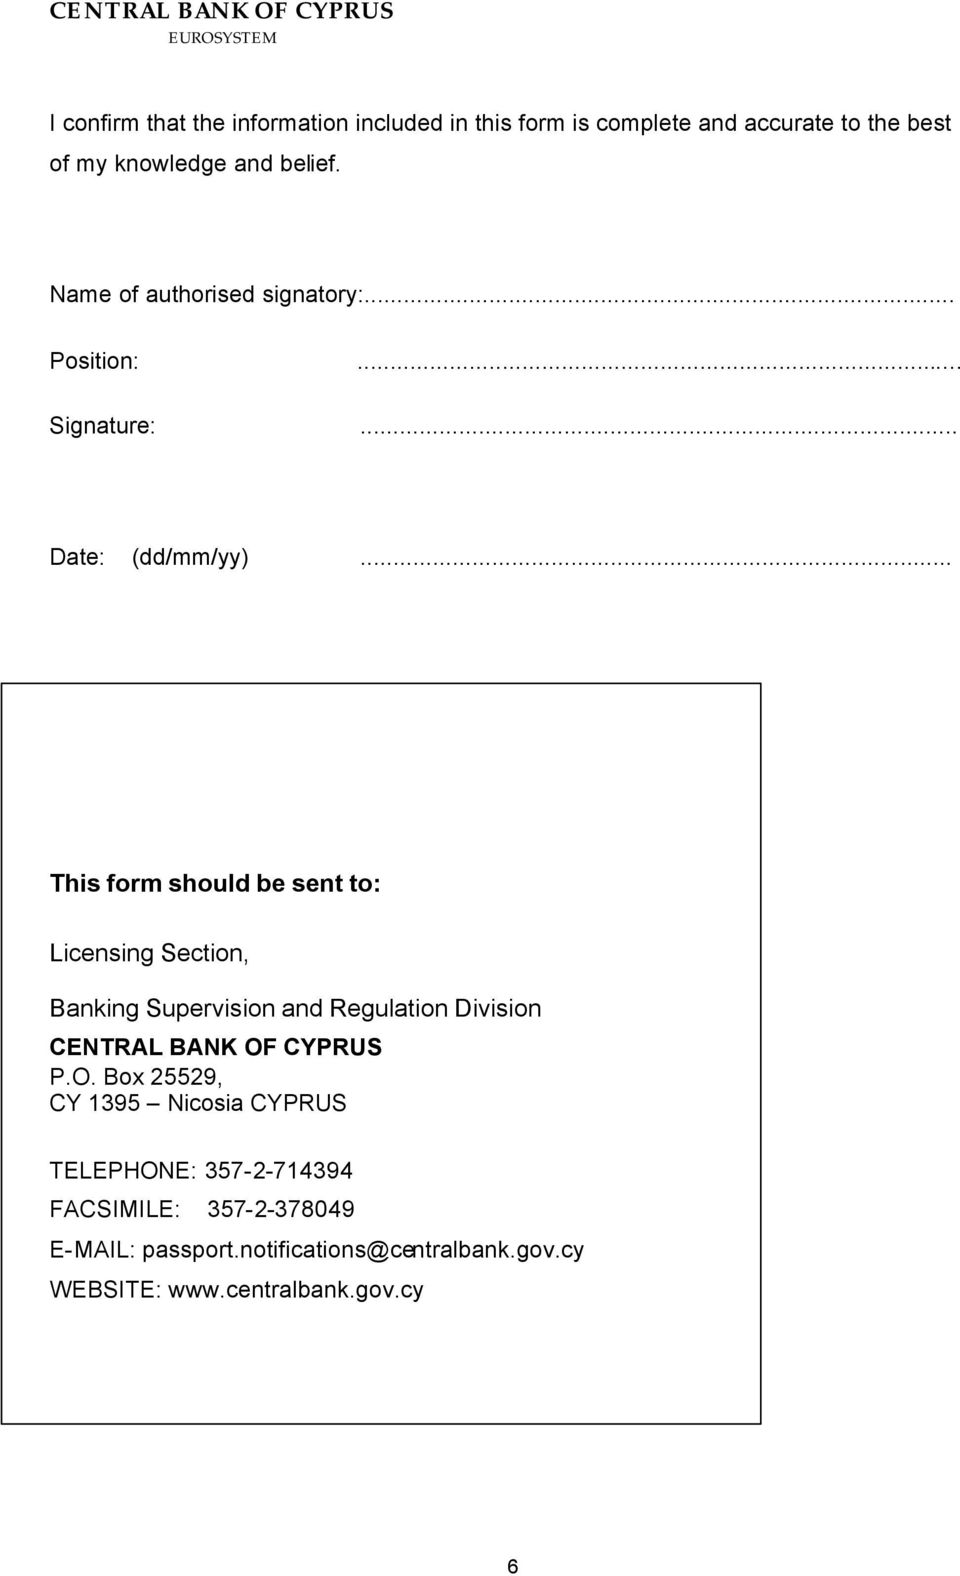 .. This form should be sent to: Licensing Section, Banking Supervision and Regulation Division CENTRAL BANK OF CYPRUS P.